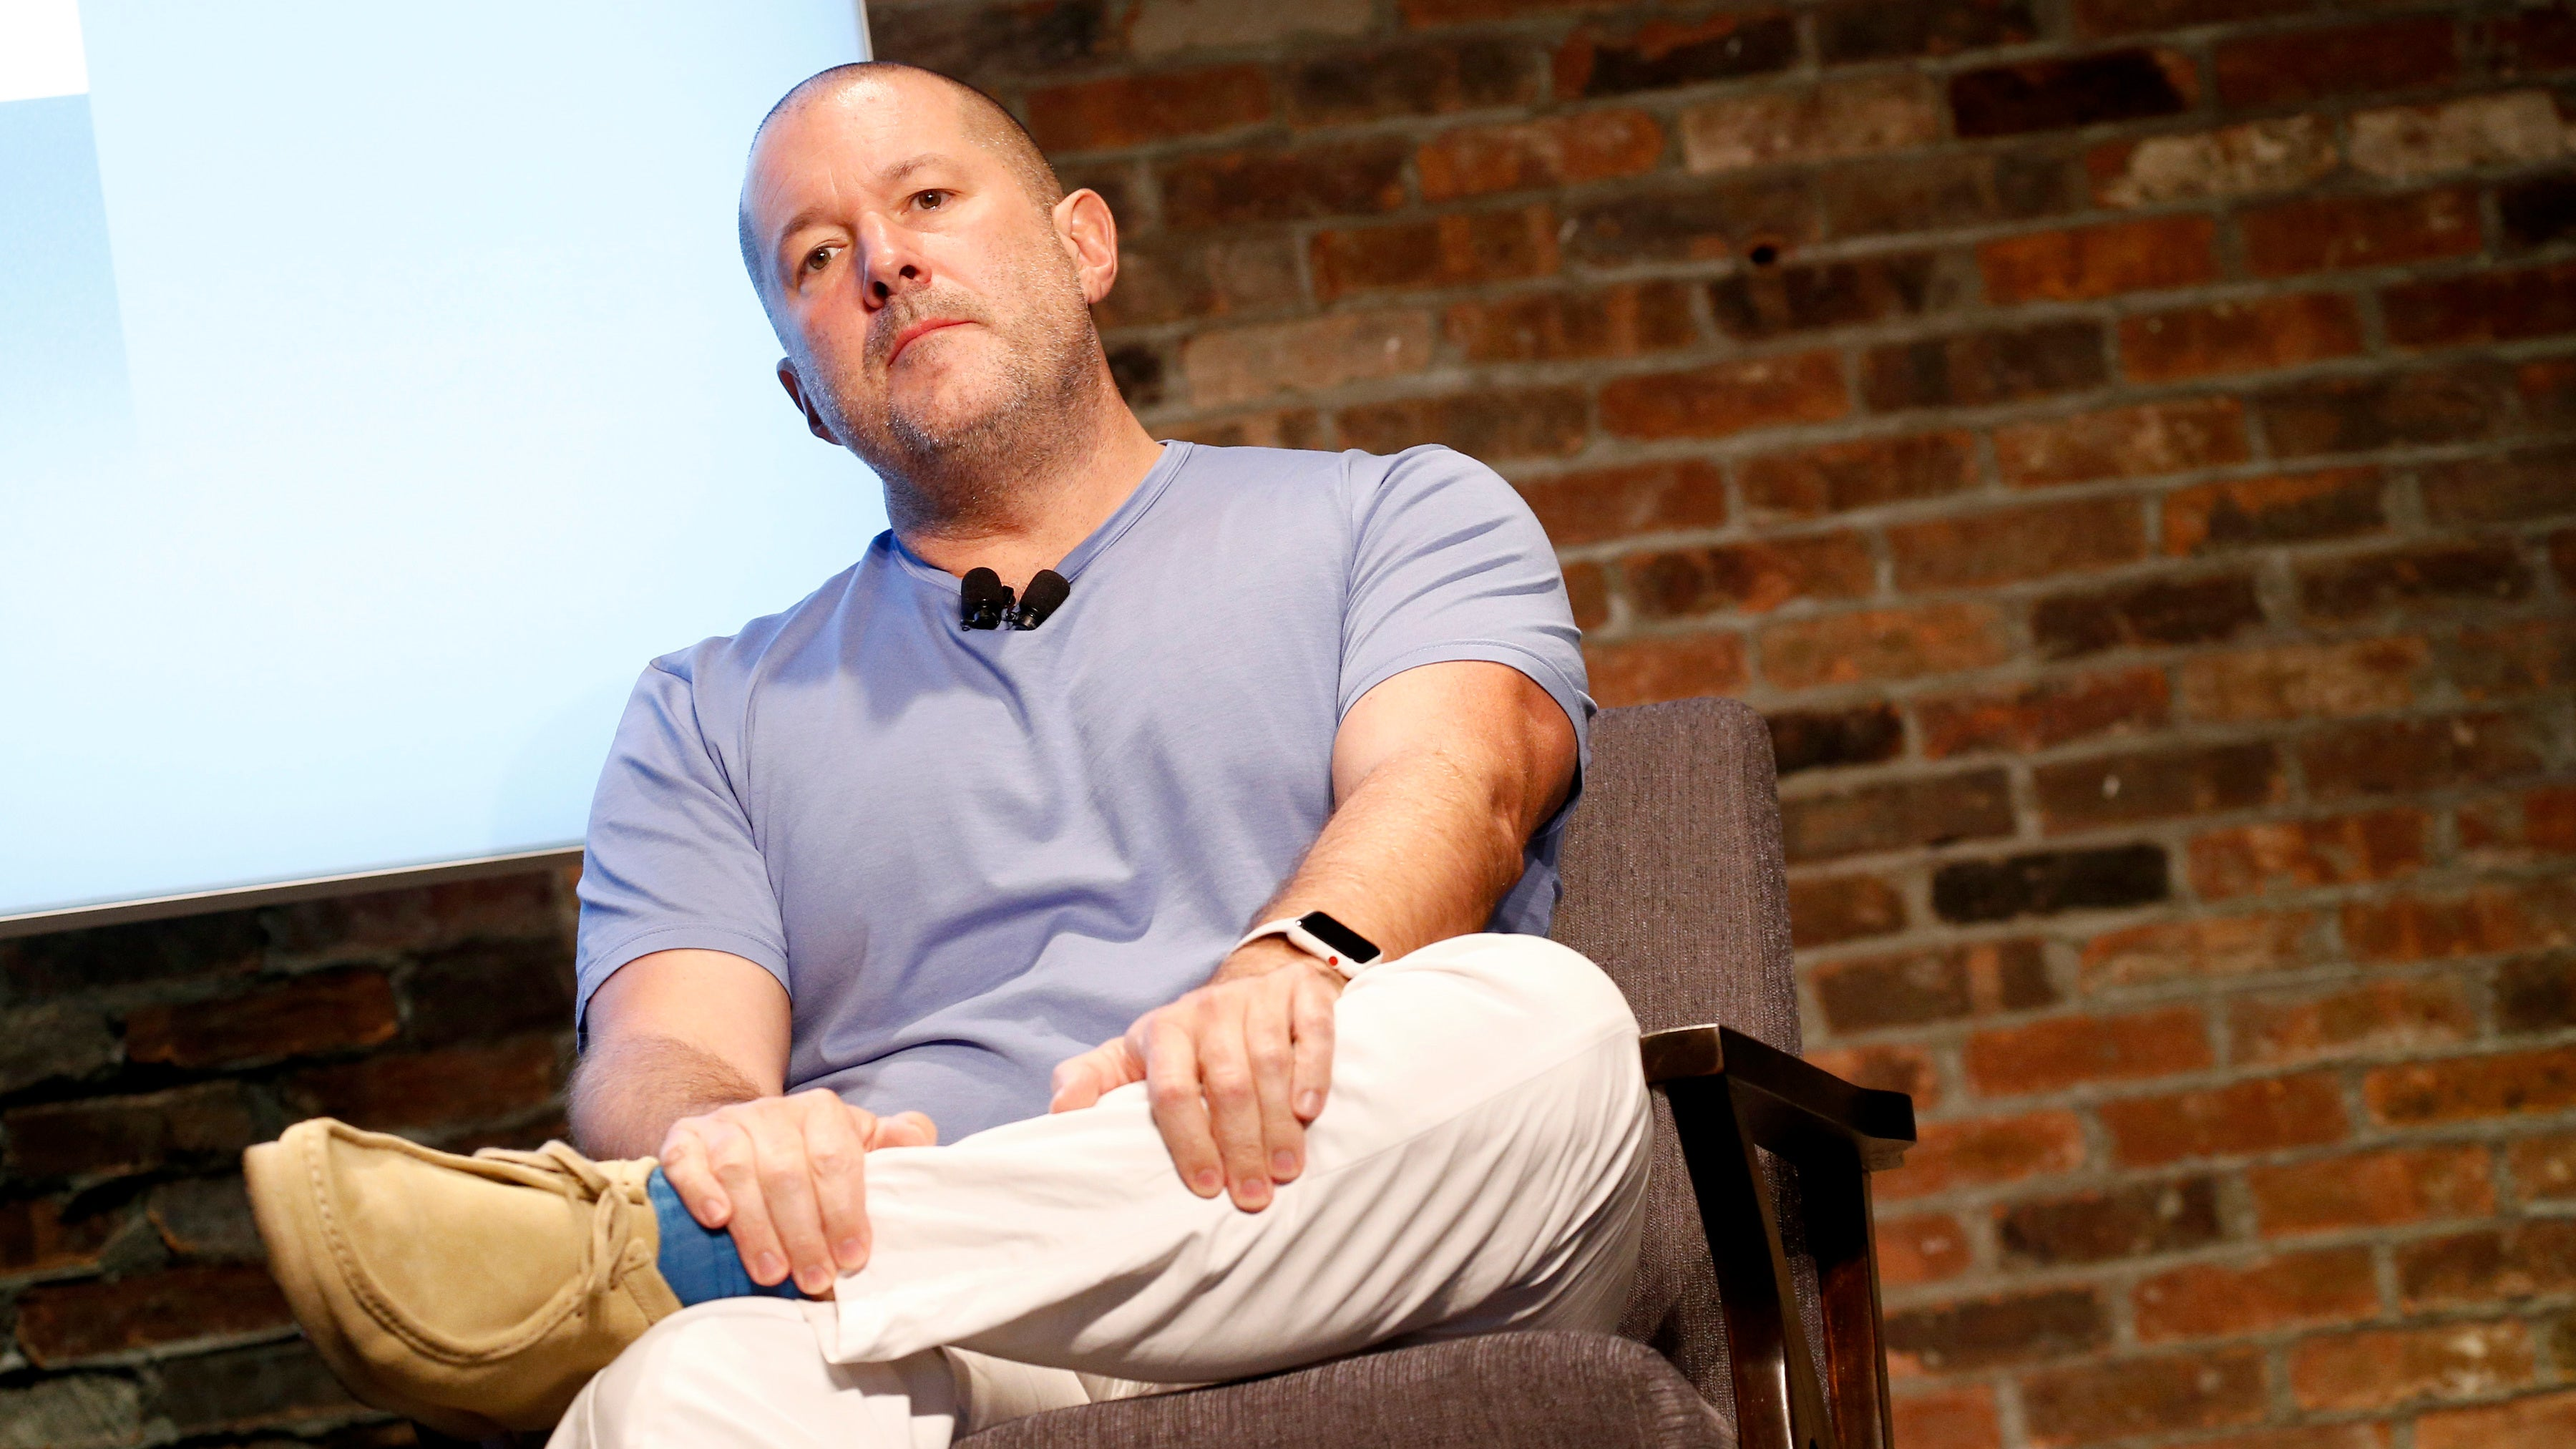 Jony Ive Is A Human Man With Good Taste In Shoes